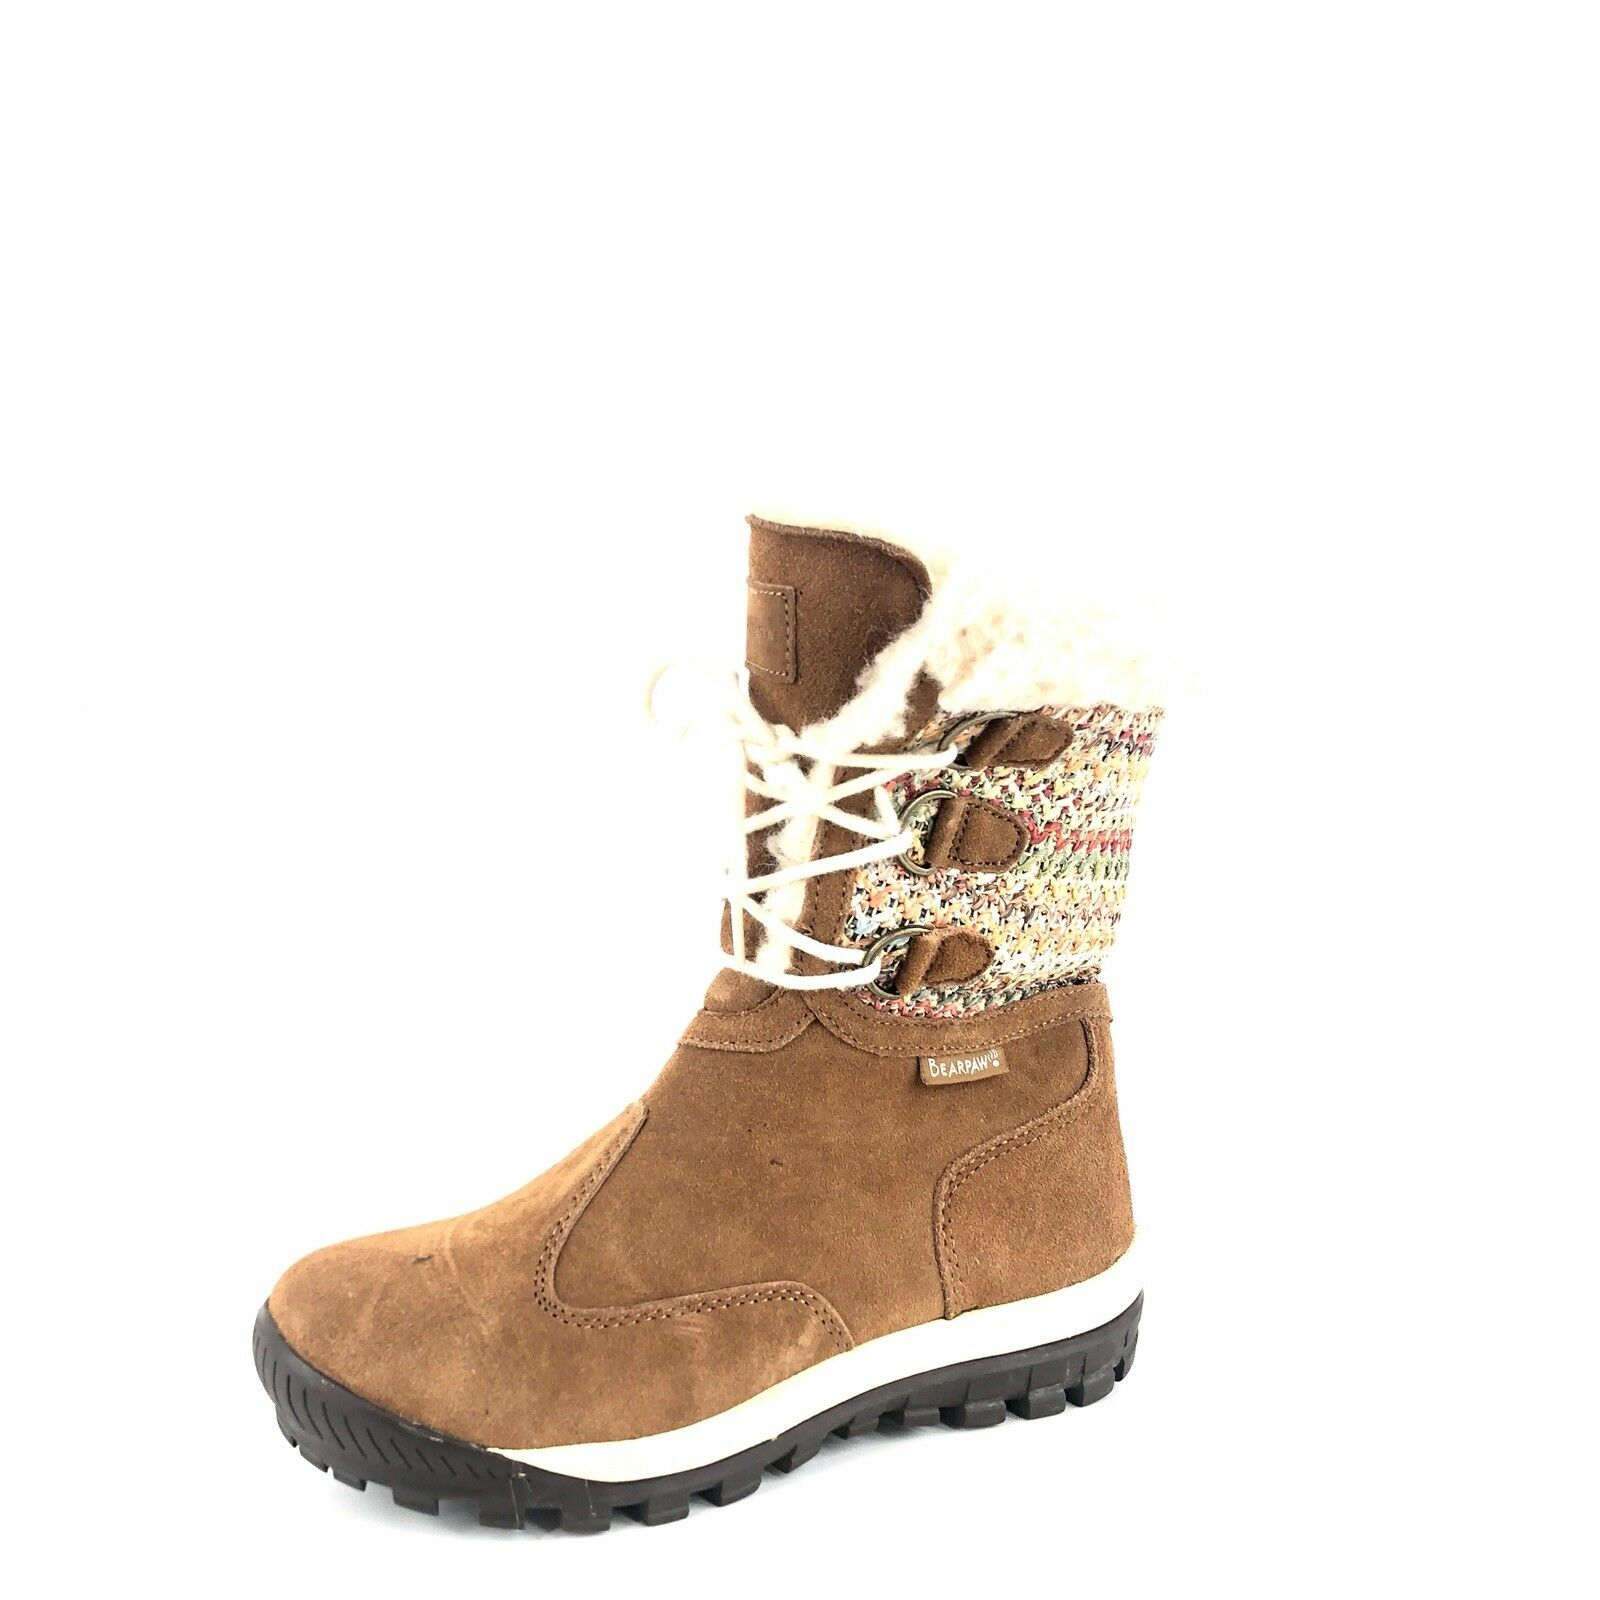 BearPaw  Ophelia  Hickory Suede Suede Suede Woven Textile Sheepskin Boots Women's Size 7 M  f93aeb